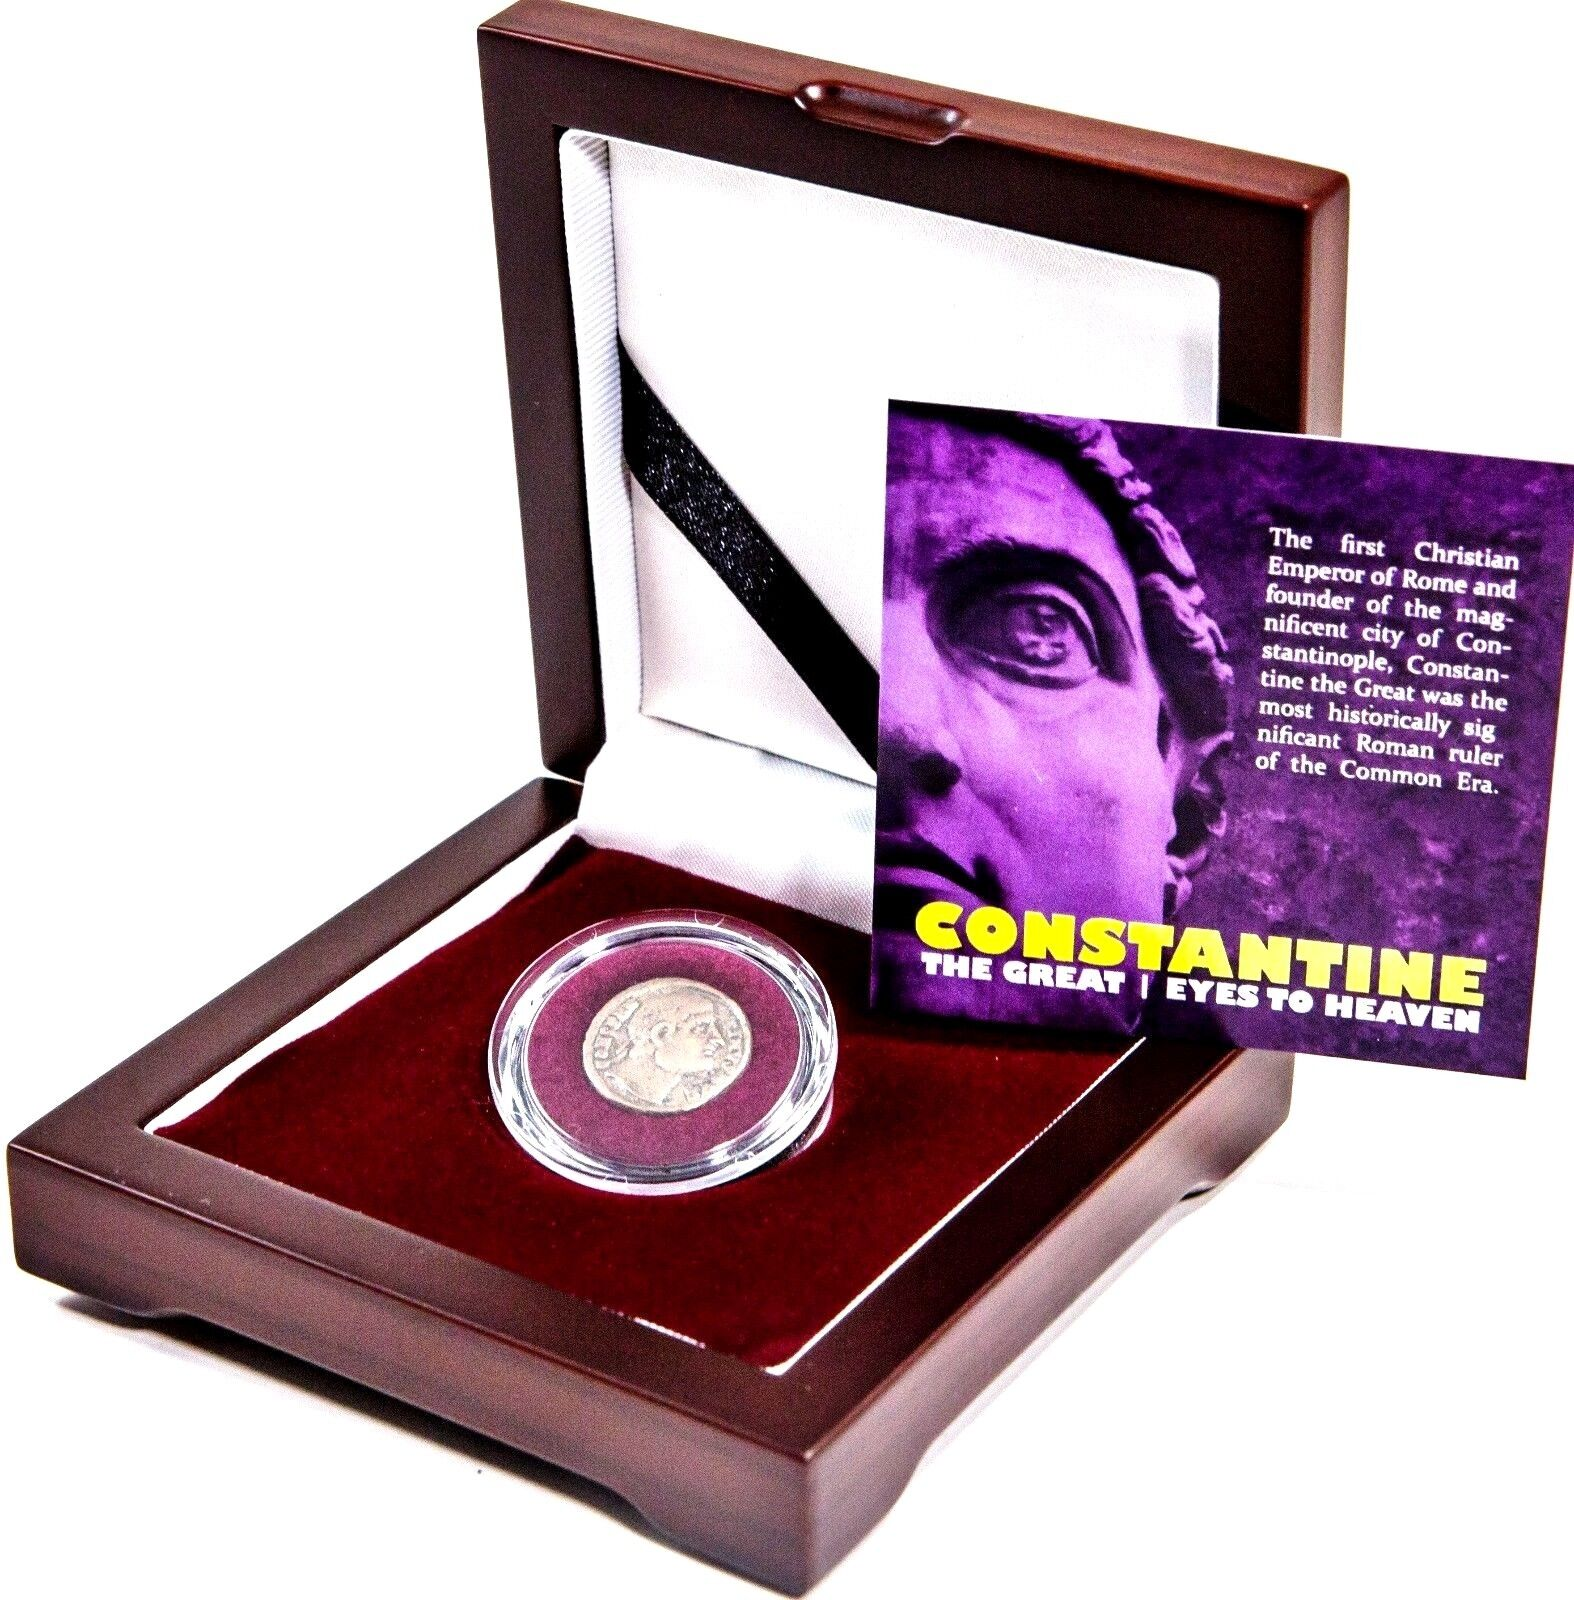 Constantine The Great Eyes To Heaven Coin Beautiful Wood Box,Story,Certificate - $126.47